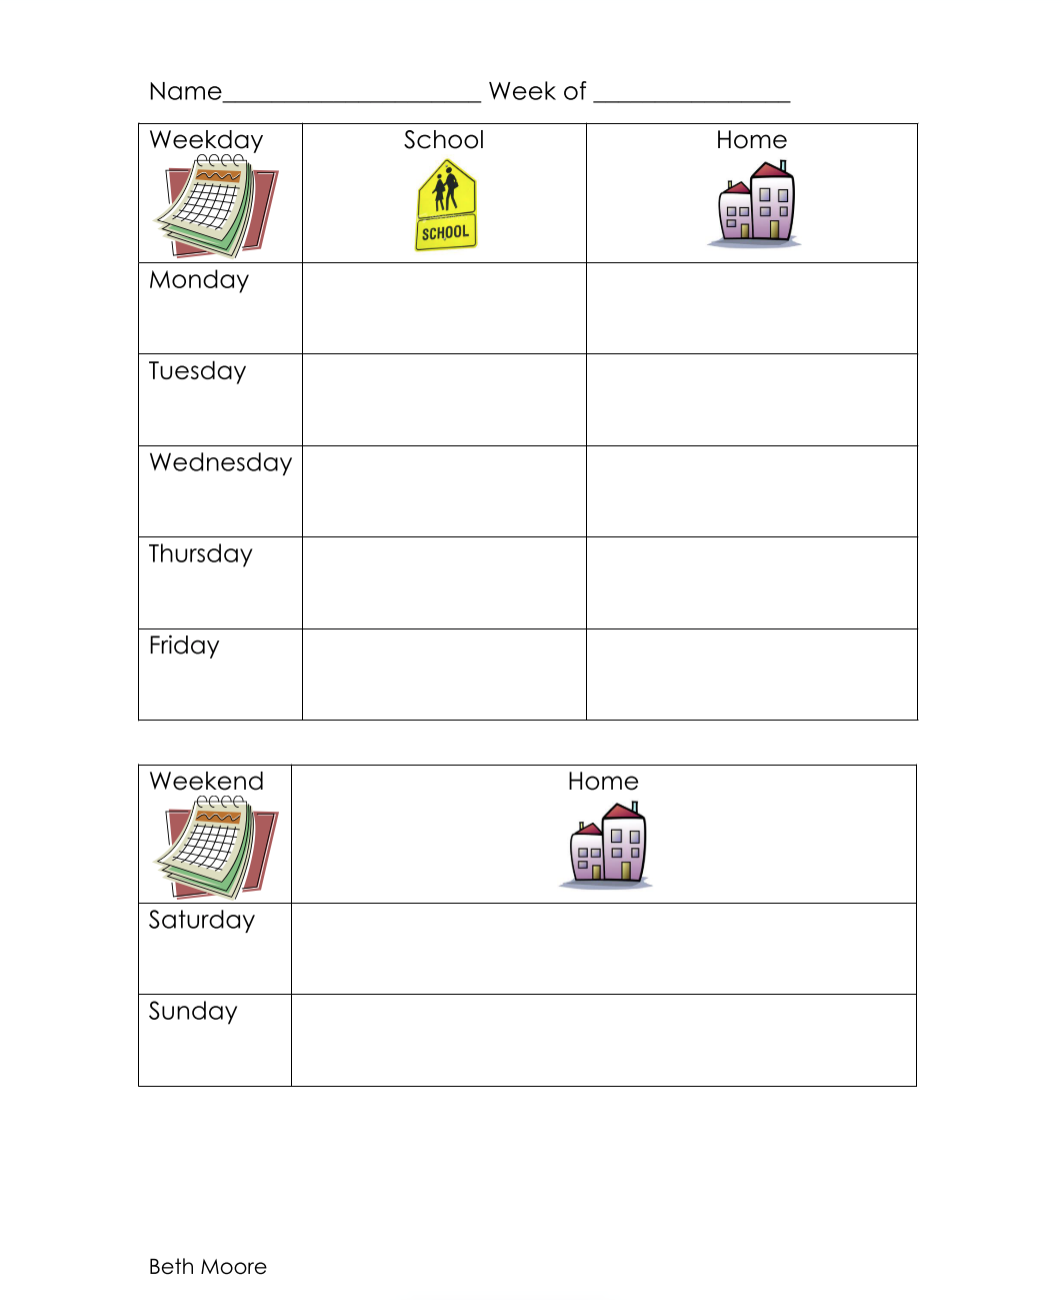 Book Log for Emergent and Beginning Readers - This book log provides space for young children to tally up the books they've read, giving them a sense of how much reading they've done. At the end of the week, kids are able to see a physical record of the work they've done, and can be proud of all they accomplished.